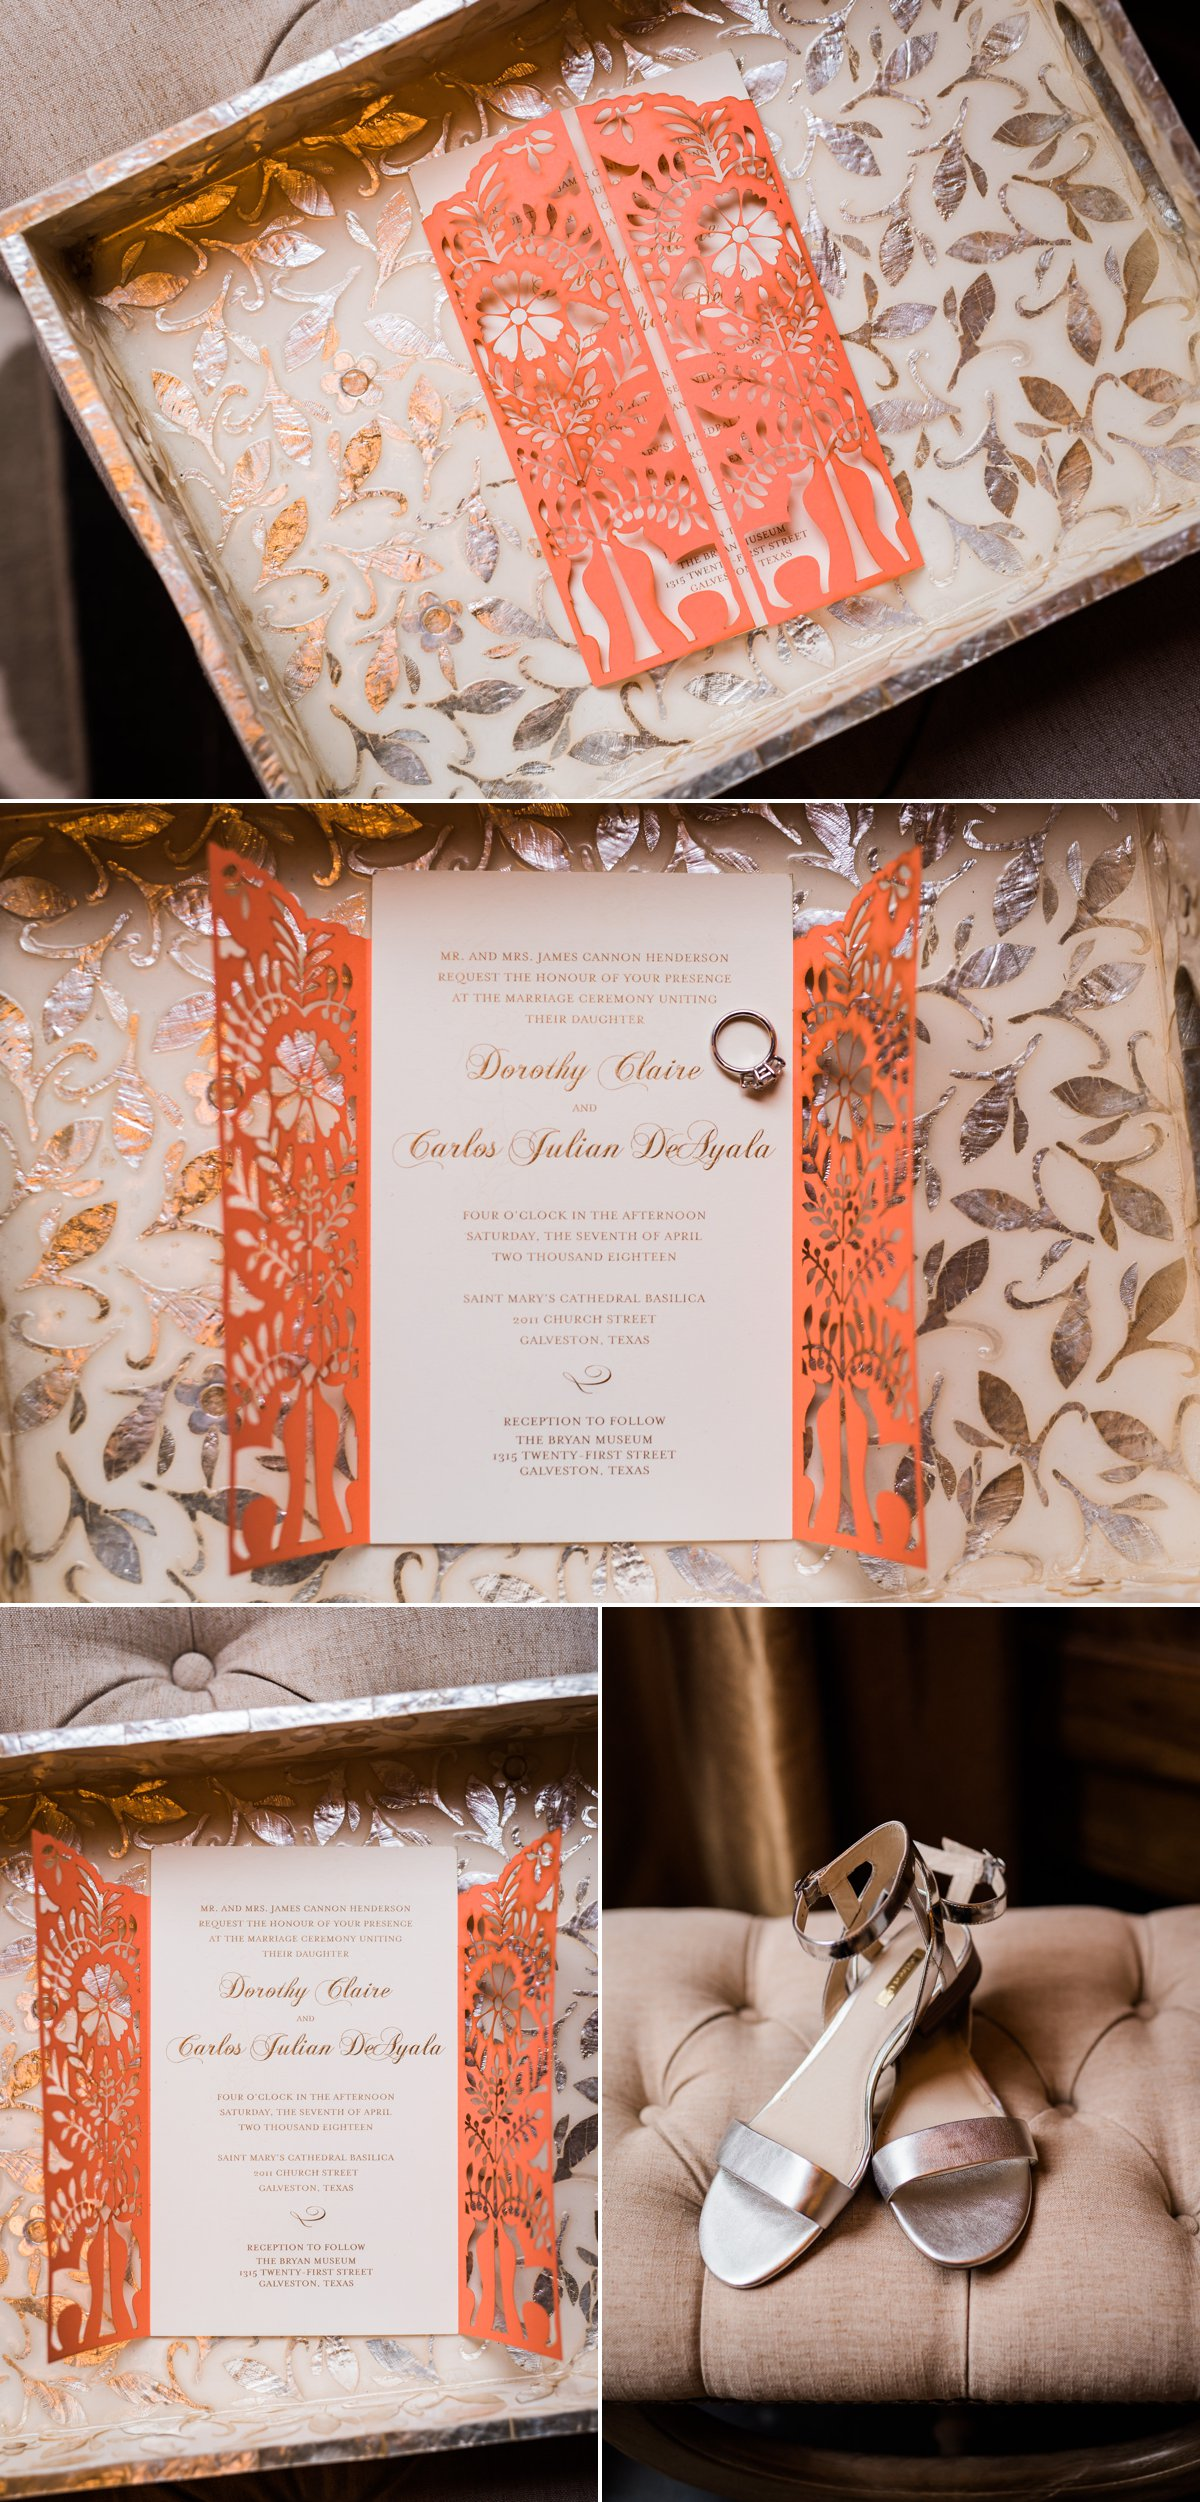 The Bryan Museum Wedding Details